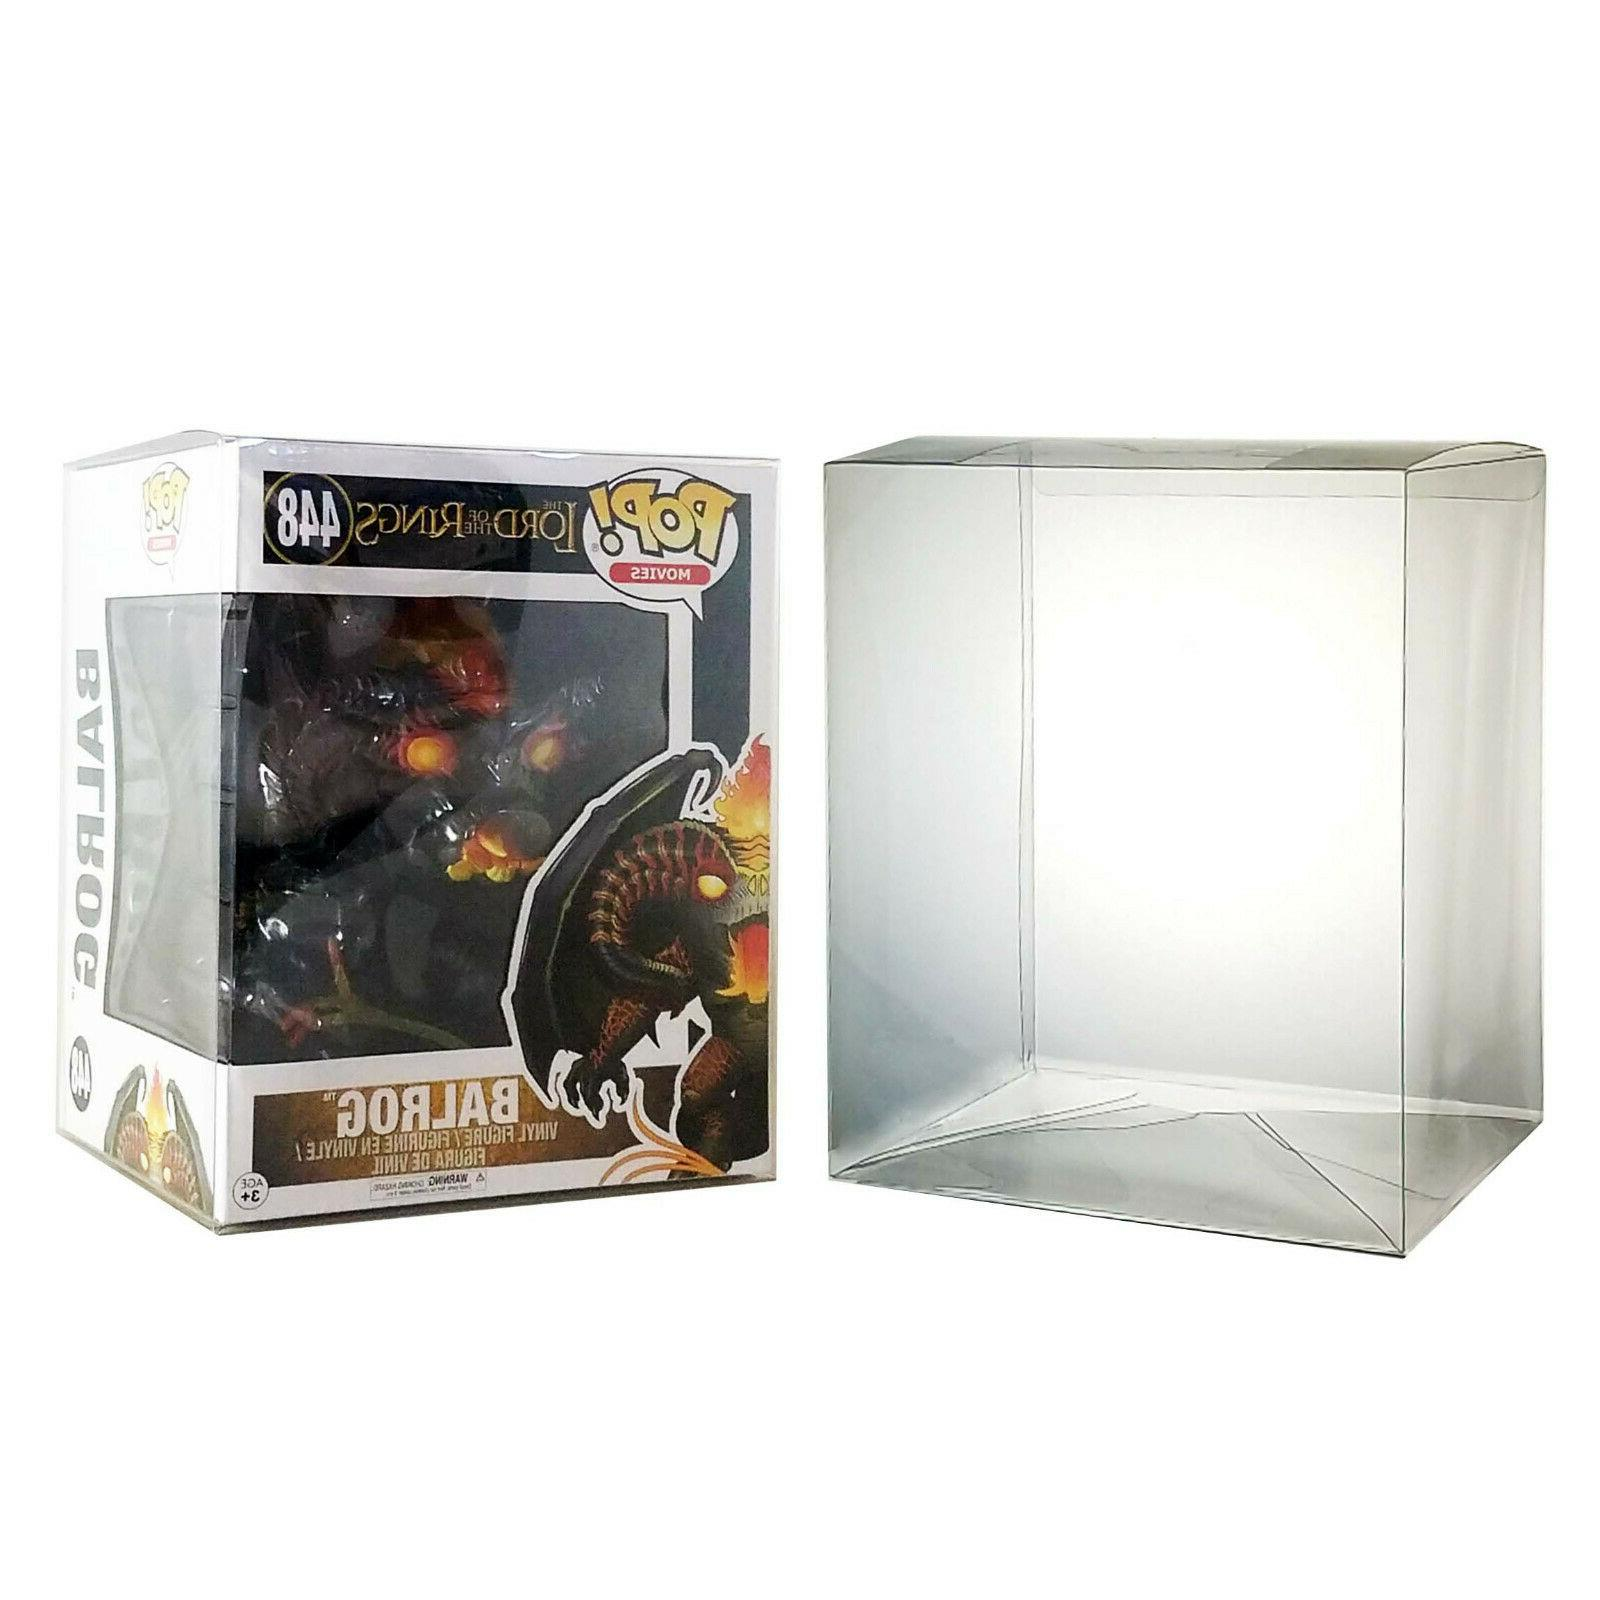 funko pop protector case for 6 inch